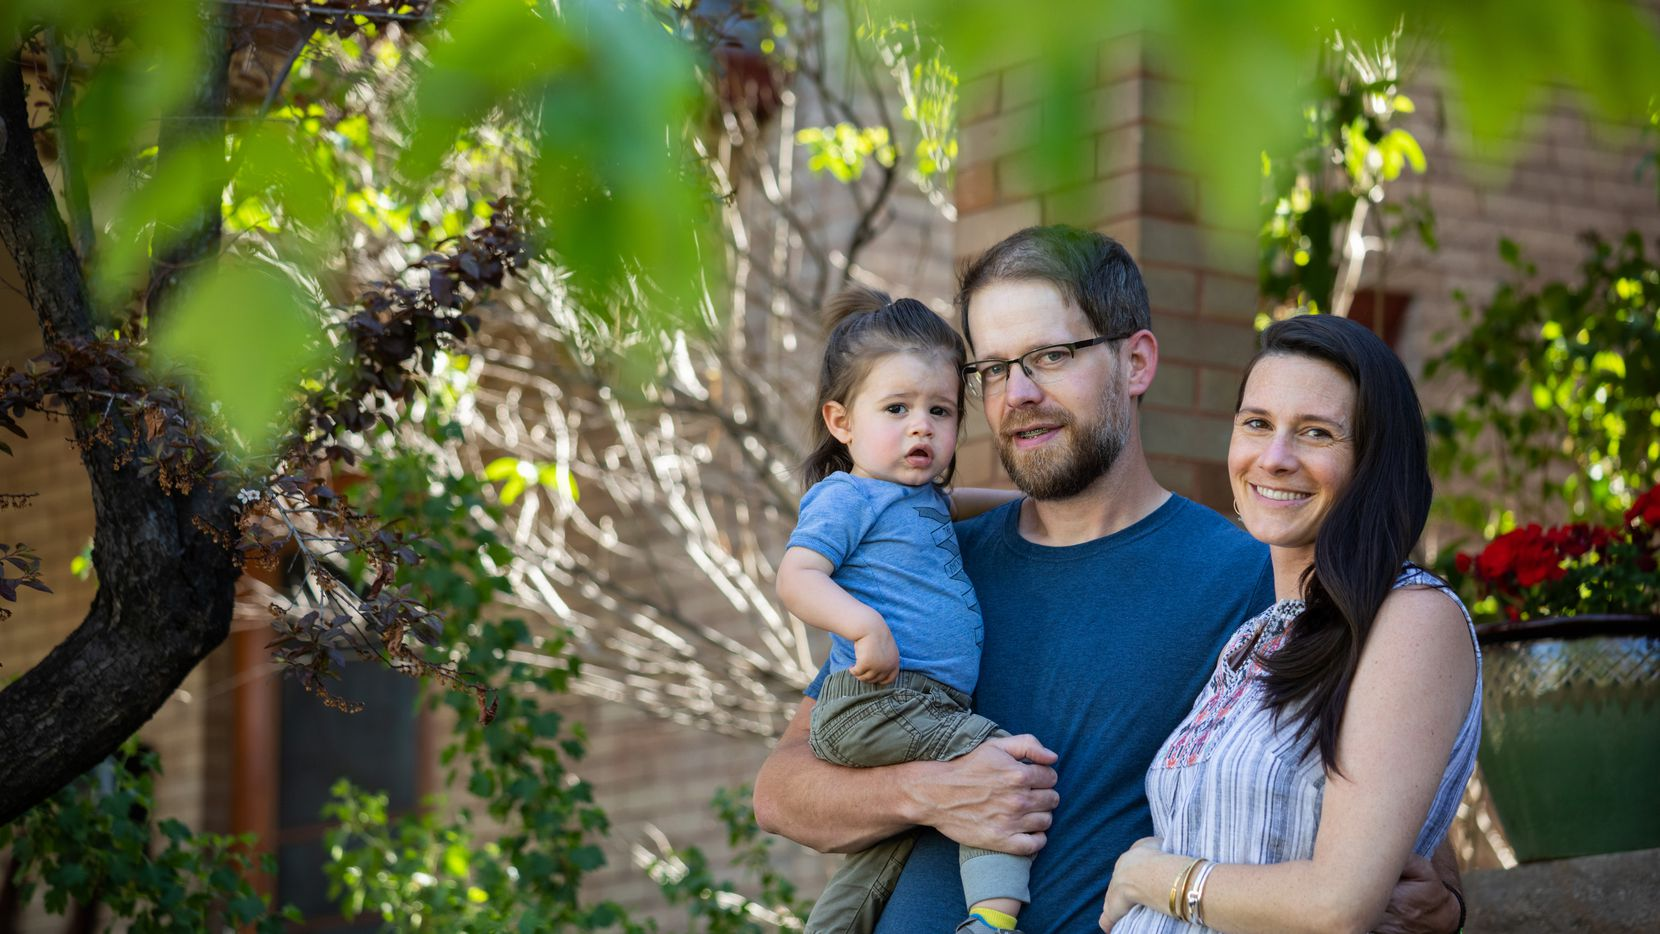 When Timothy Regan had coughing fits and a low-grade fever from late March into April, his COVID-19 worries weren't only about himself. He was also concerned for his pregnant wife, Elissa, and their 1-year-old, Finn, both of whom also felt sick with COVID symptoms in April.